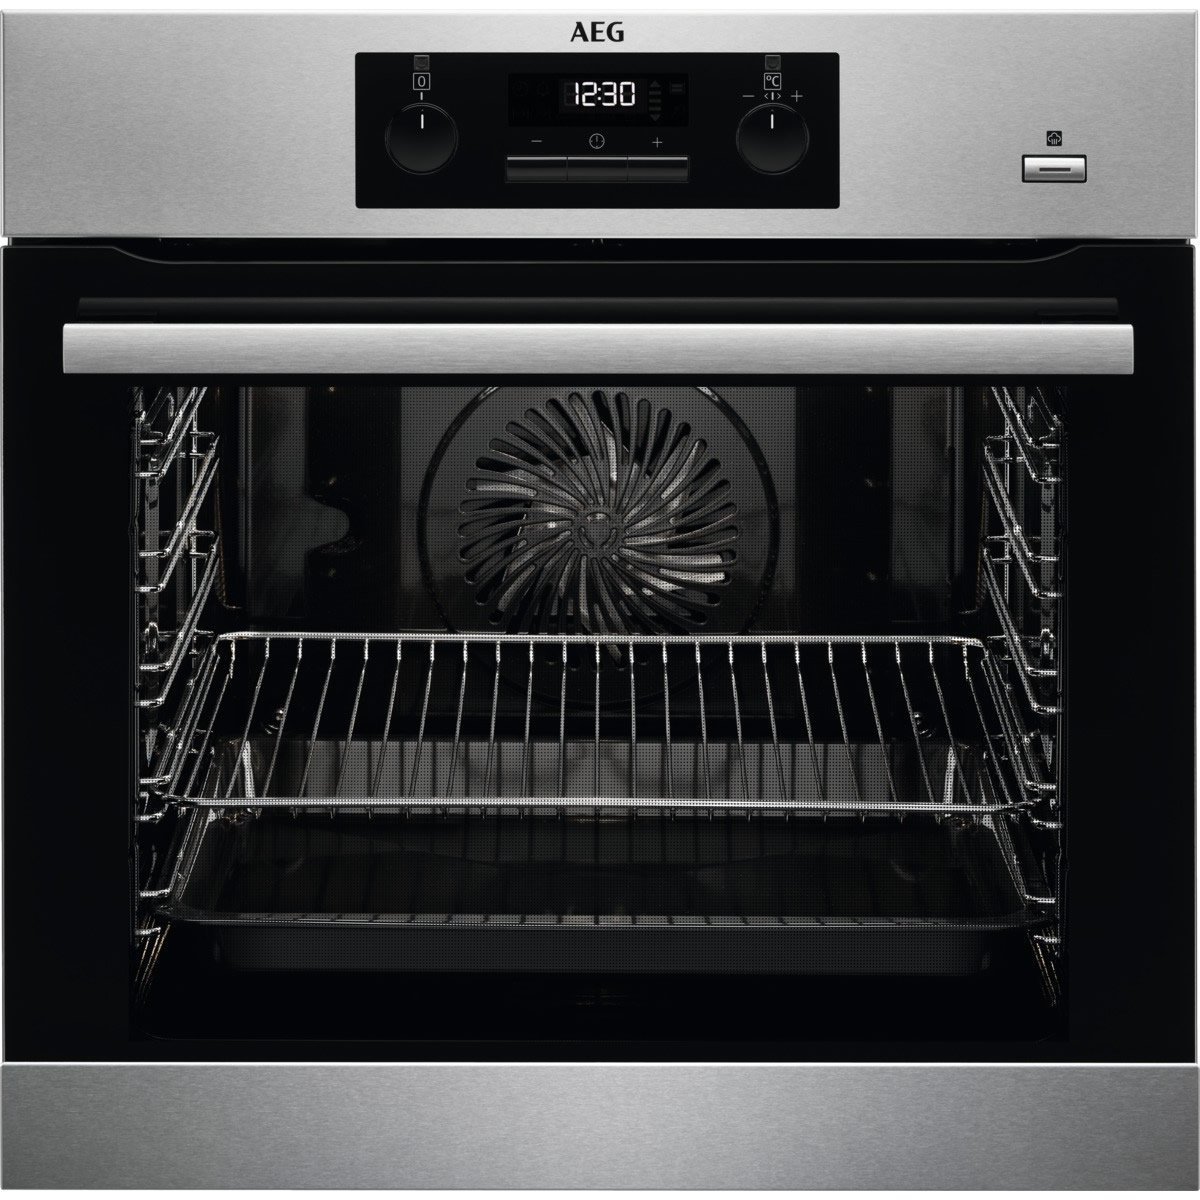 AEG BPS351220M 600mm Built-In Steam Bake Single Electric Oven Pyro